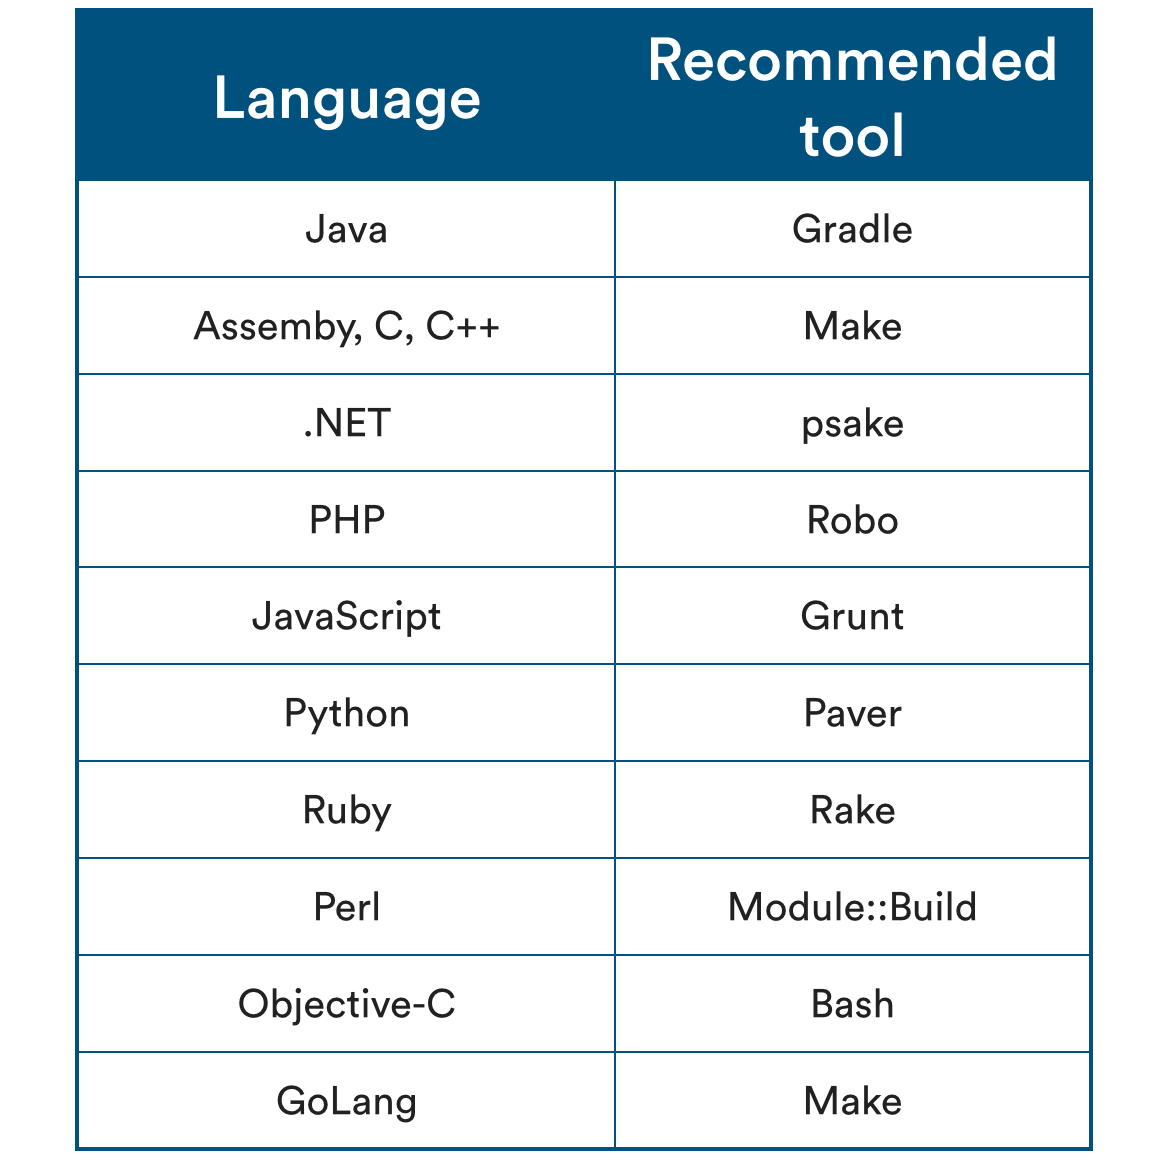 Chart of code language and corresponding recommended tool | Atlassian CI/CD